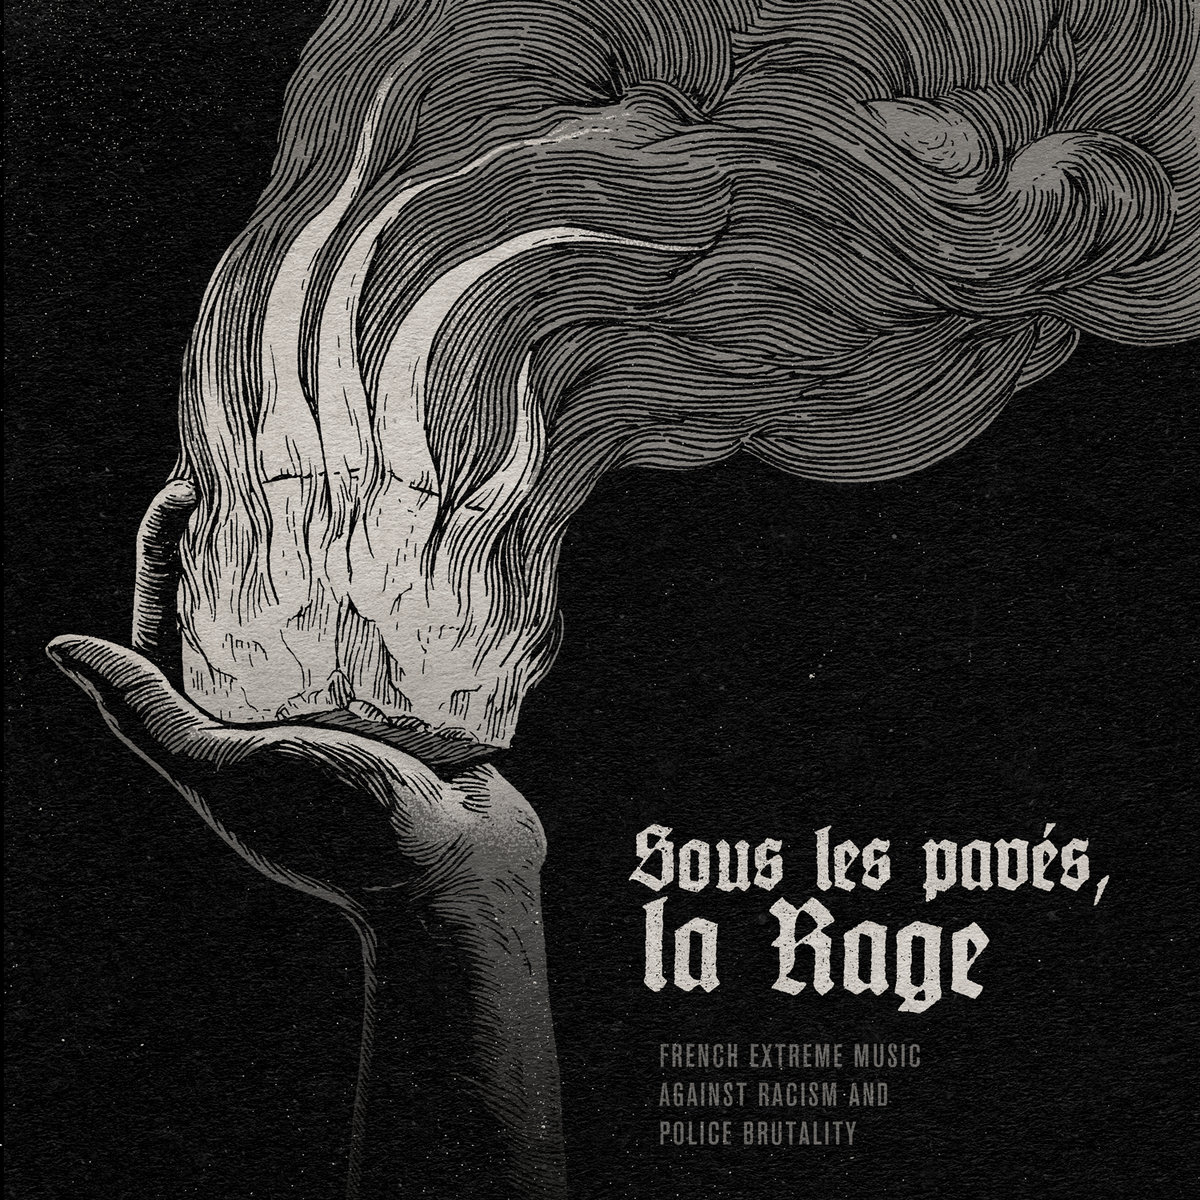 Sous les pavés, la rage - French extreme music against racism and police brutality